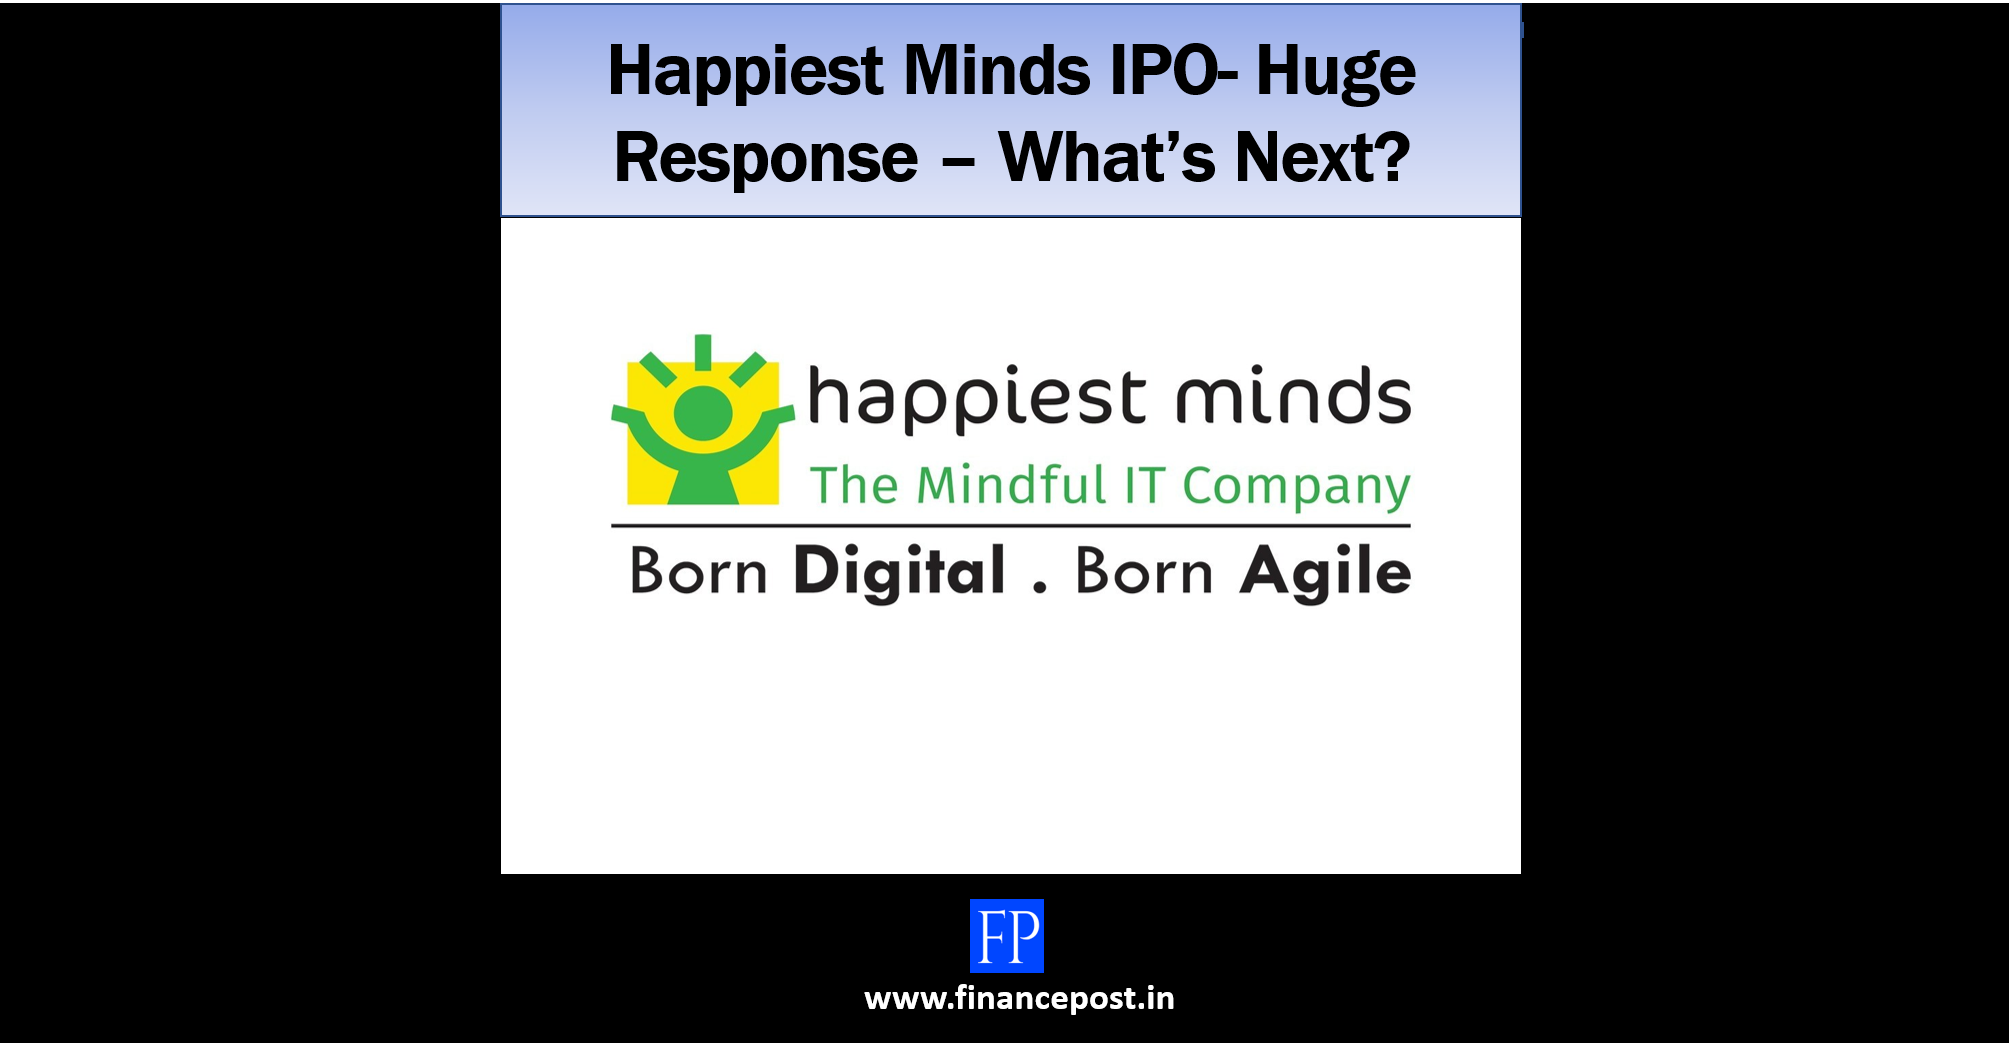 happiest minds ipo